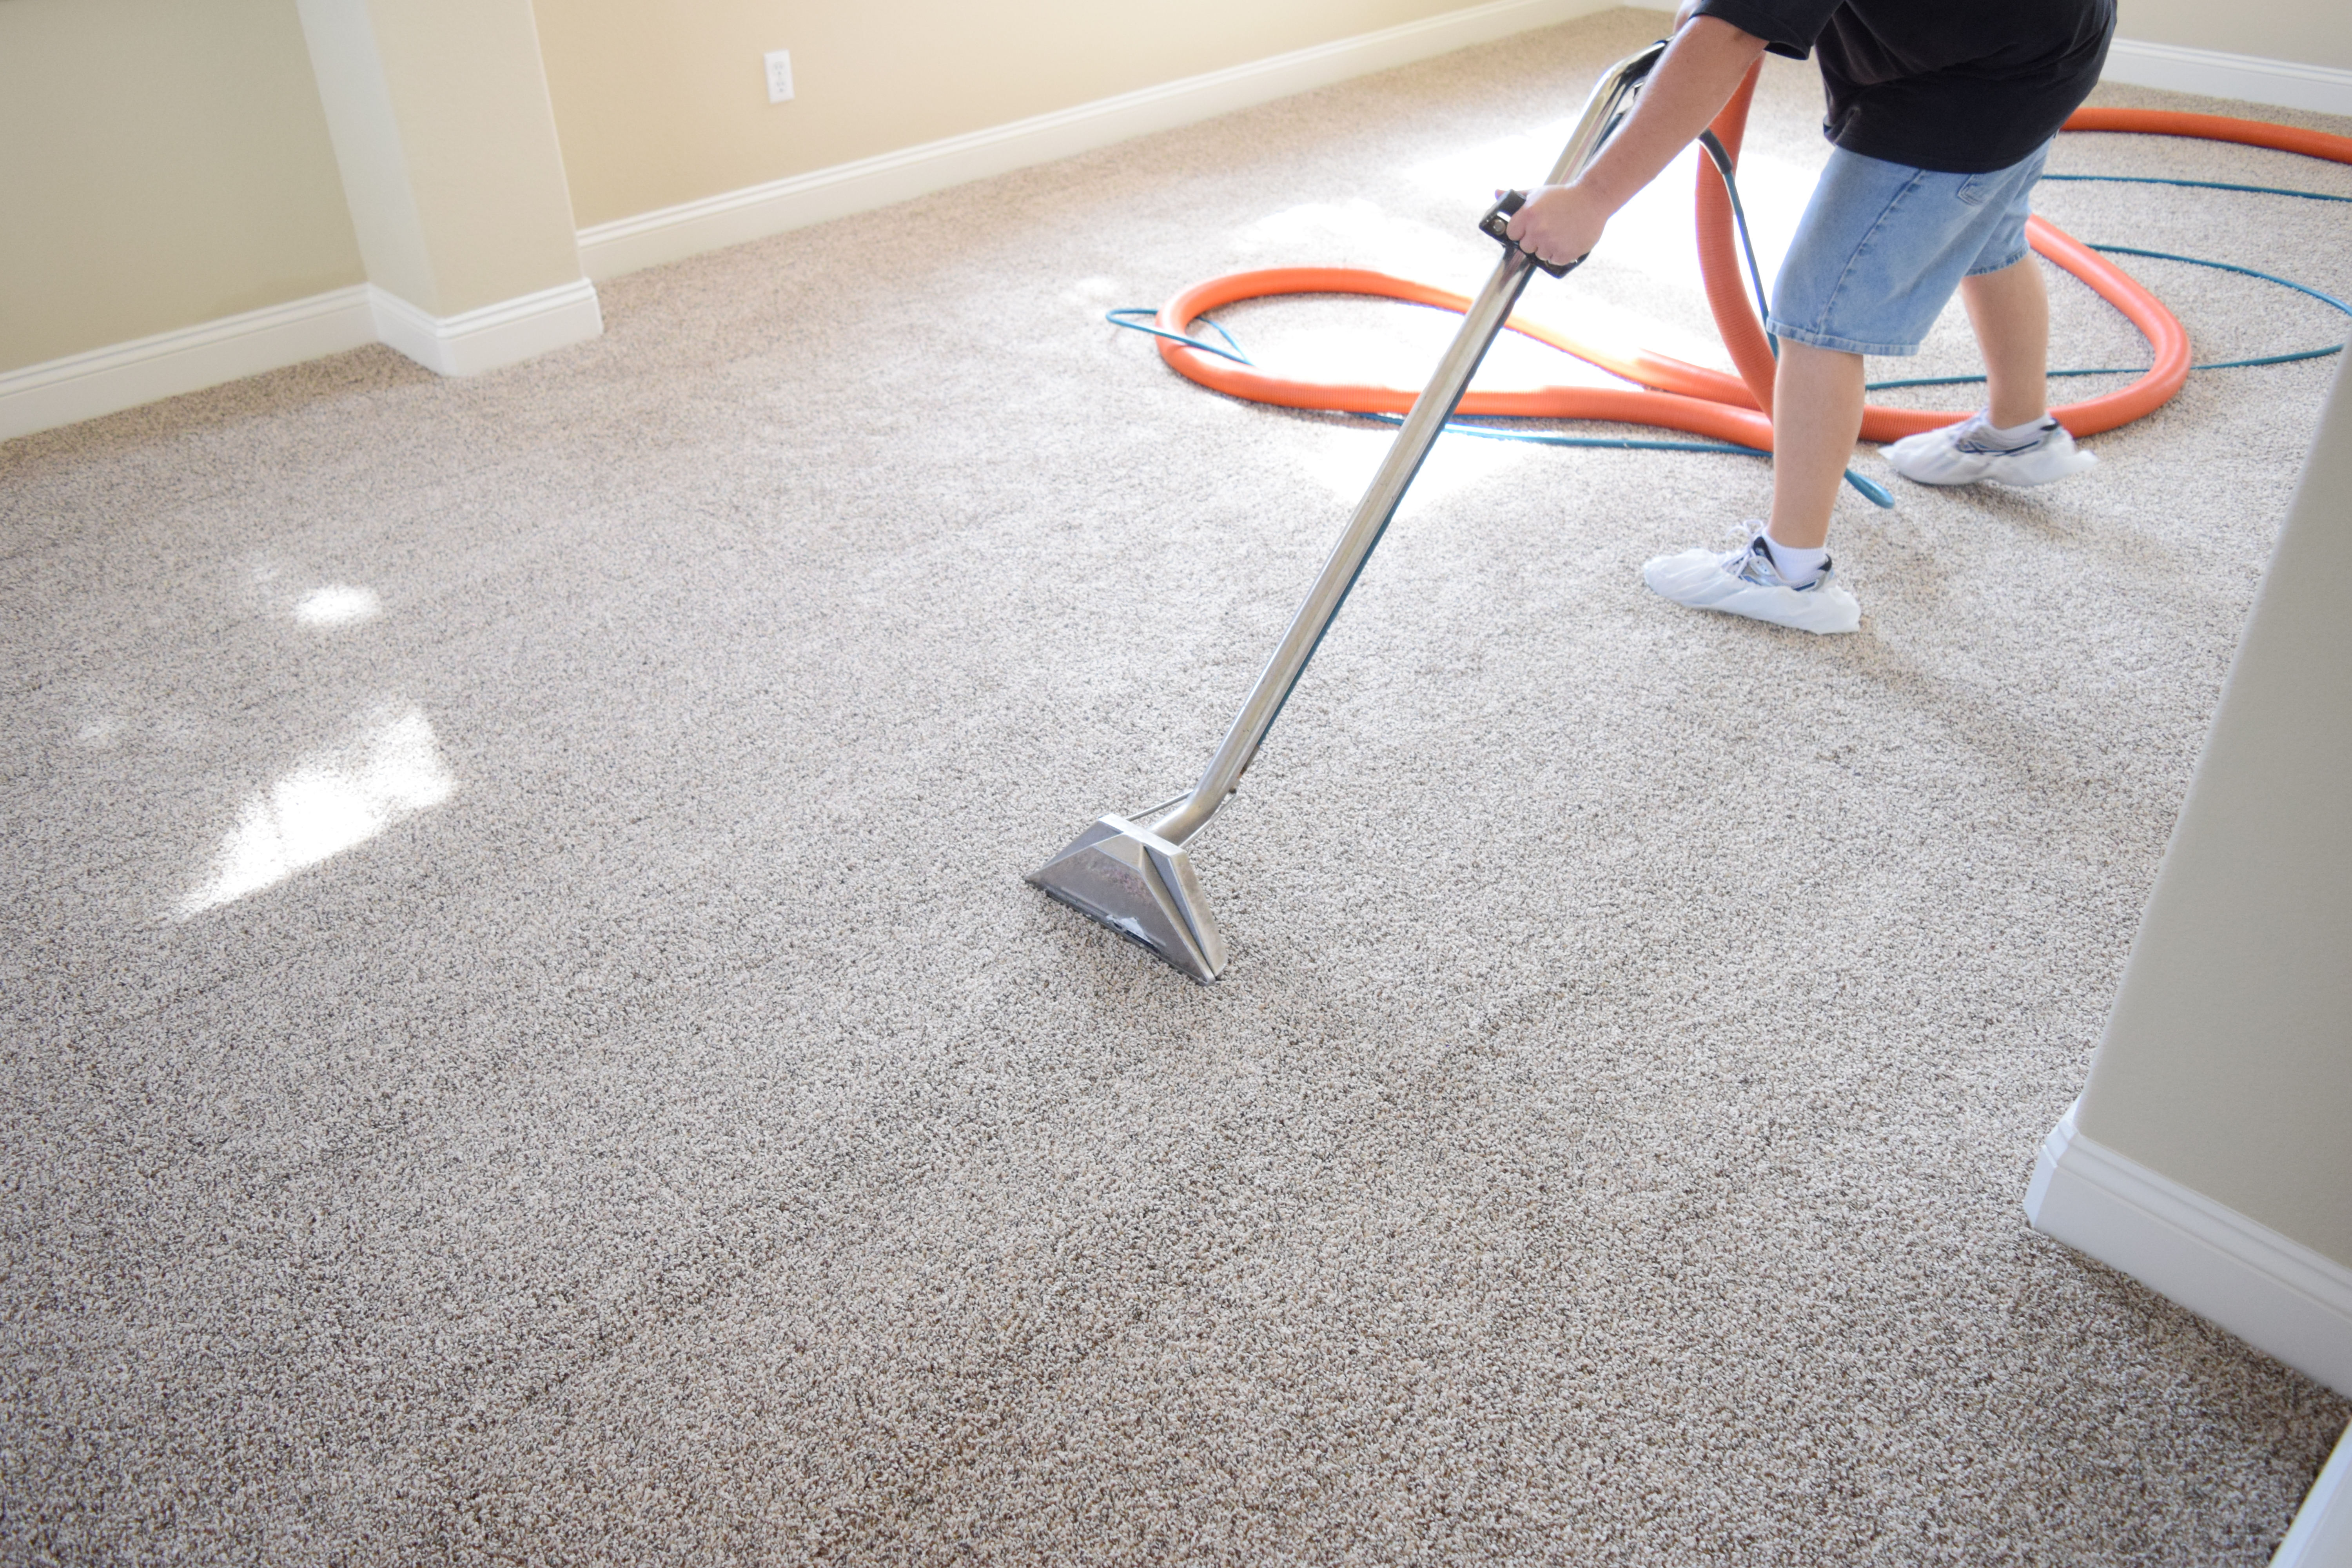 Carpet Cleaning Services Indianapolis IN